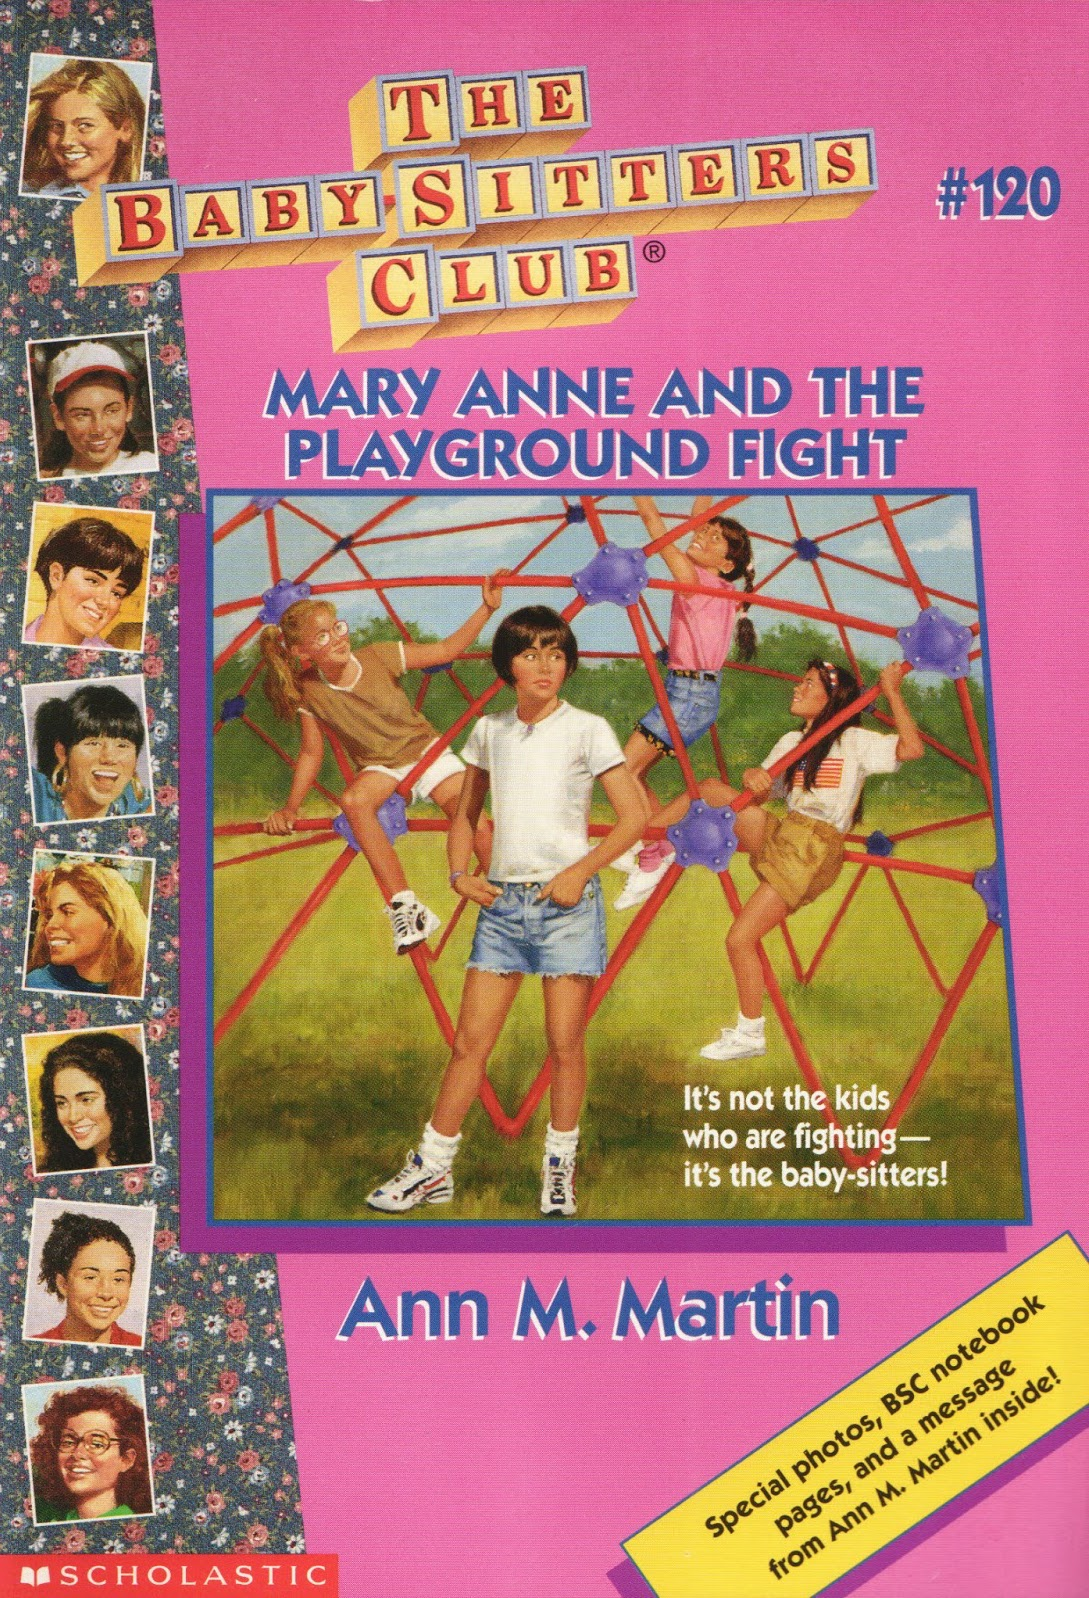 Mary Anne and the Playground Fight